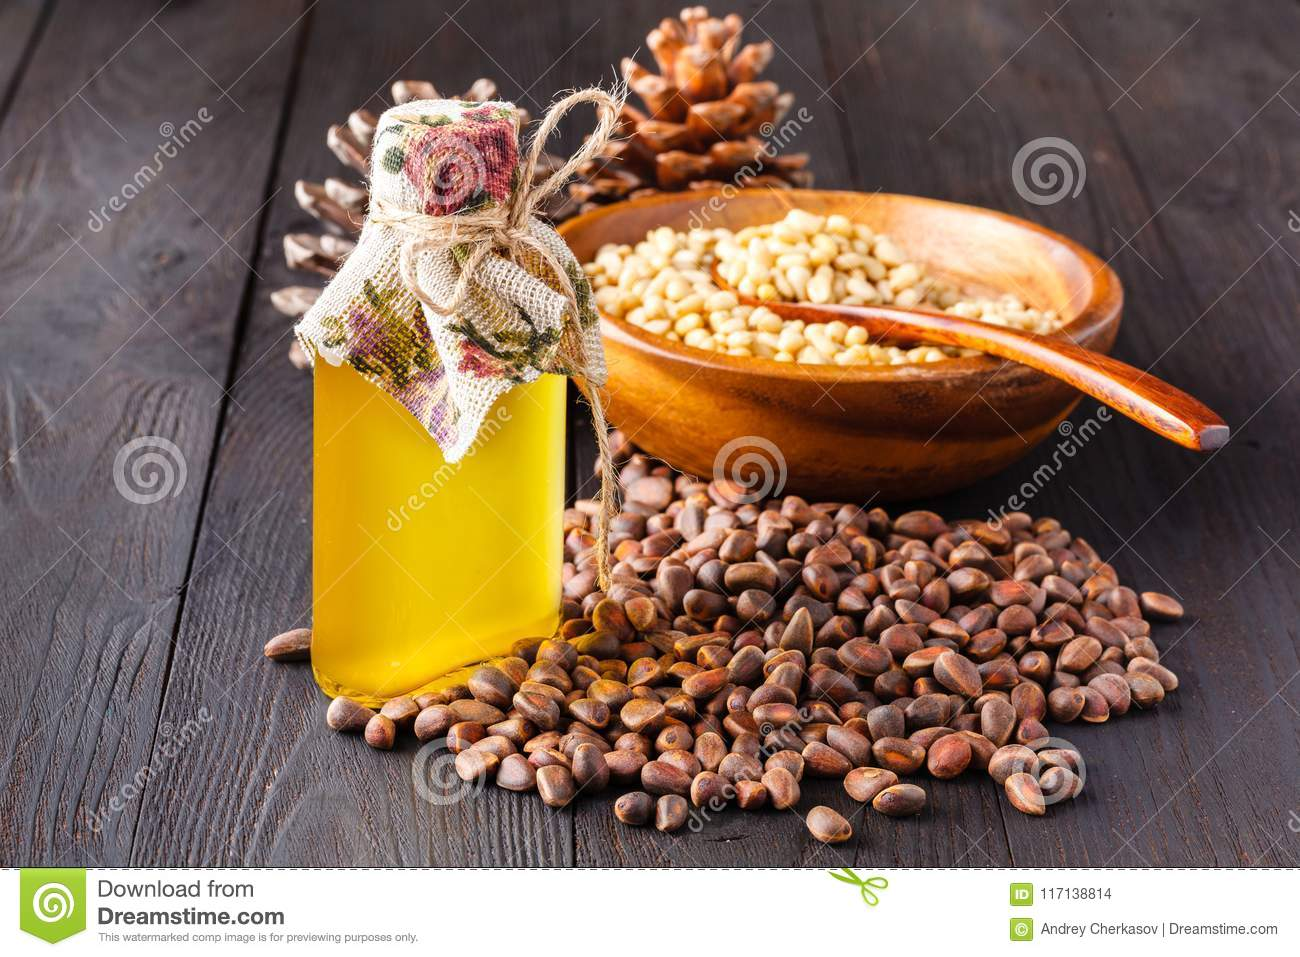 Cedar cone with nuts and a glass bottle with oil on a wooden background. The source of natural vitamins and minerals. Used in folk